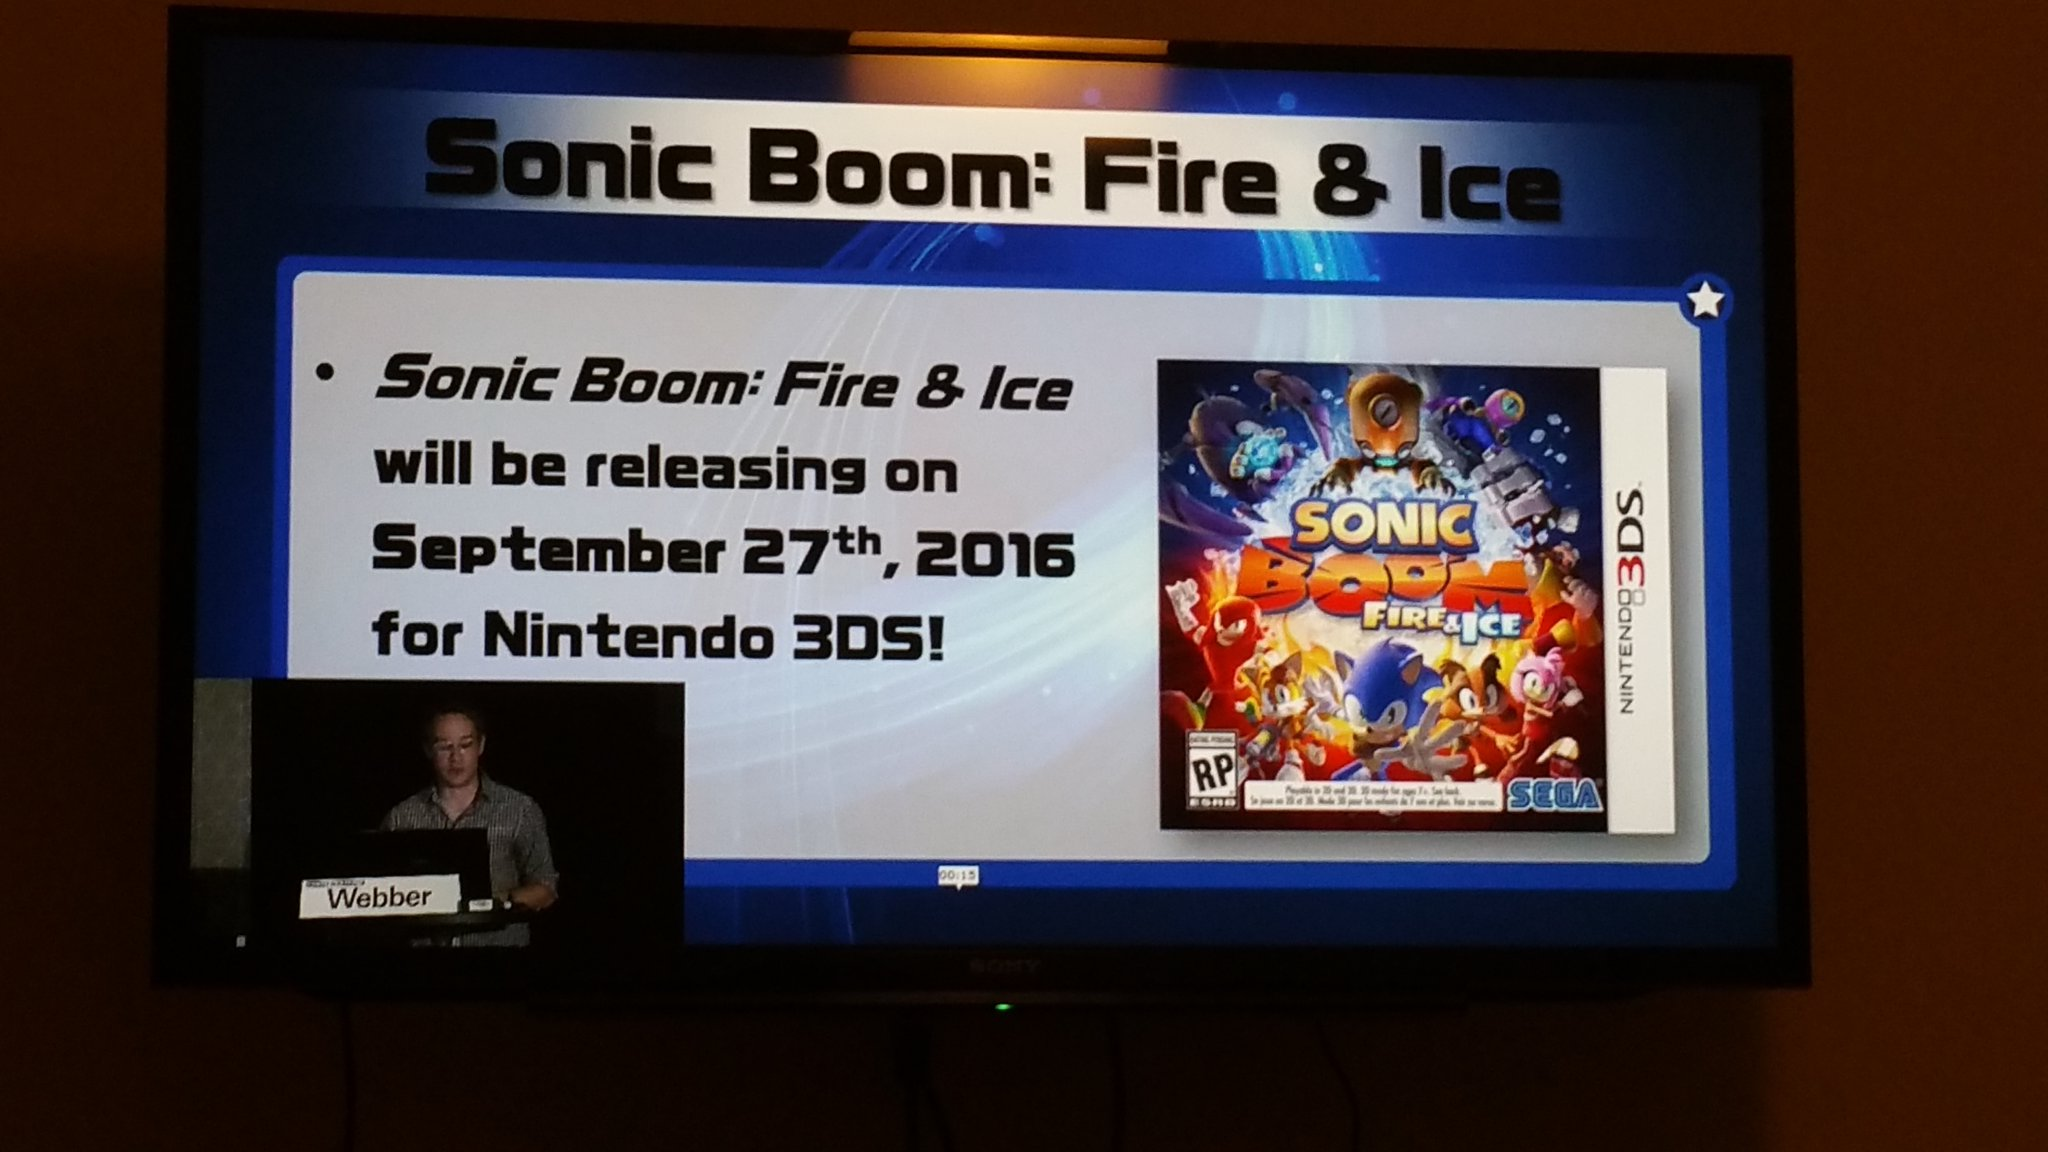 Sonic Boom Fire & Ice dated for Sept 27th